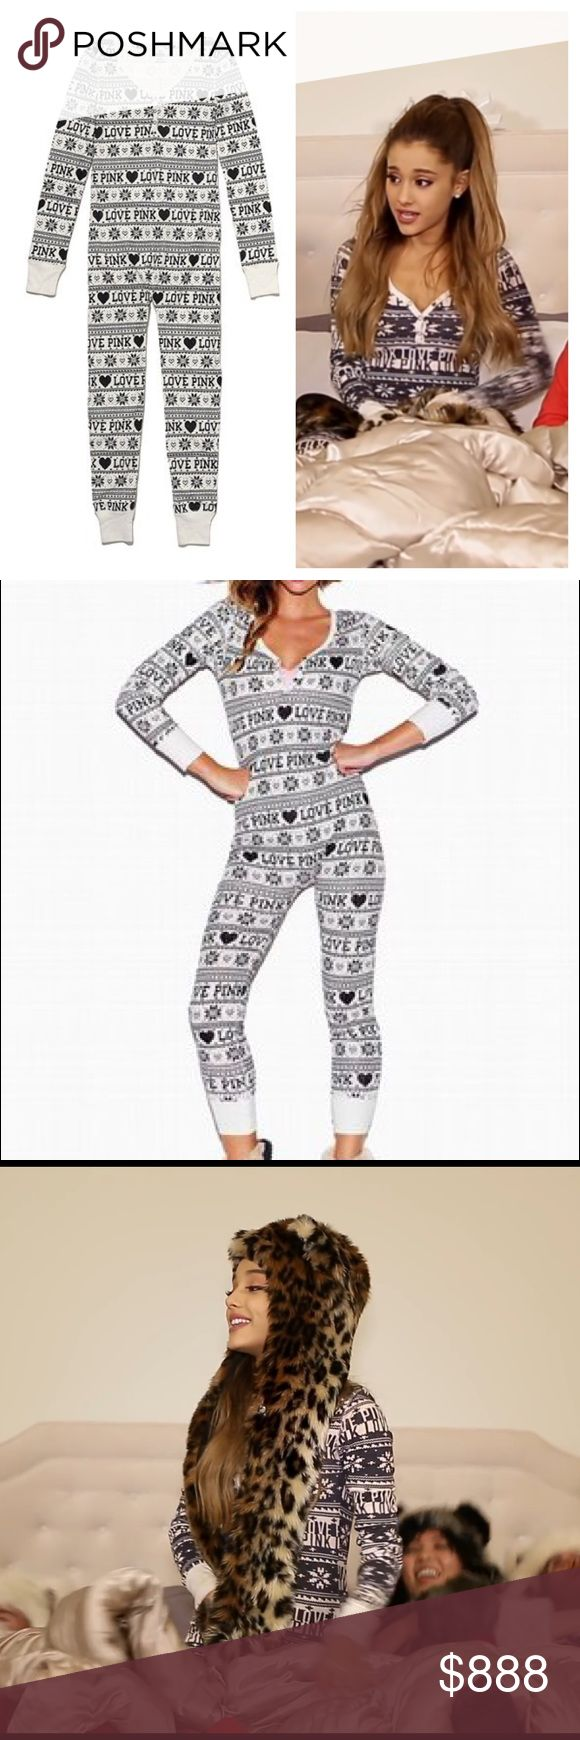 """Victoria Secret Pink Snowflake Onesie In great condition!   Size medium!  Features button up flat at the rear end Fair Isle snowflake and """"Love Pink"""" print all over   Get a head start on your fall/winter/holiday wear with this popular thermal onesie by VS PINK! ✨Hard to find in this color✨ and worn in navy blue and white by Ariana Grande in her """"Santa Tell Me"""" video. PINK Victoria's Secret Intimates & Sleepwear Pajamas"""